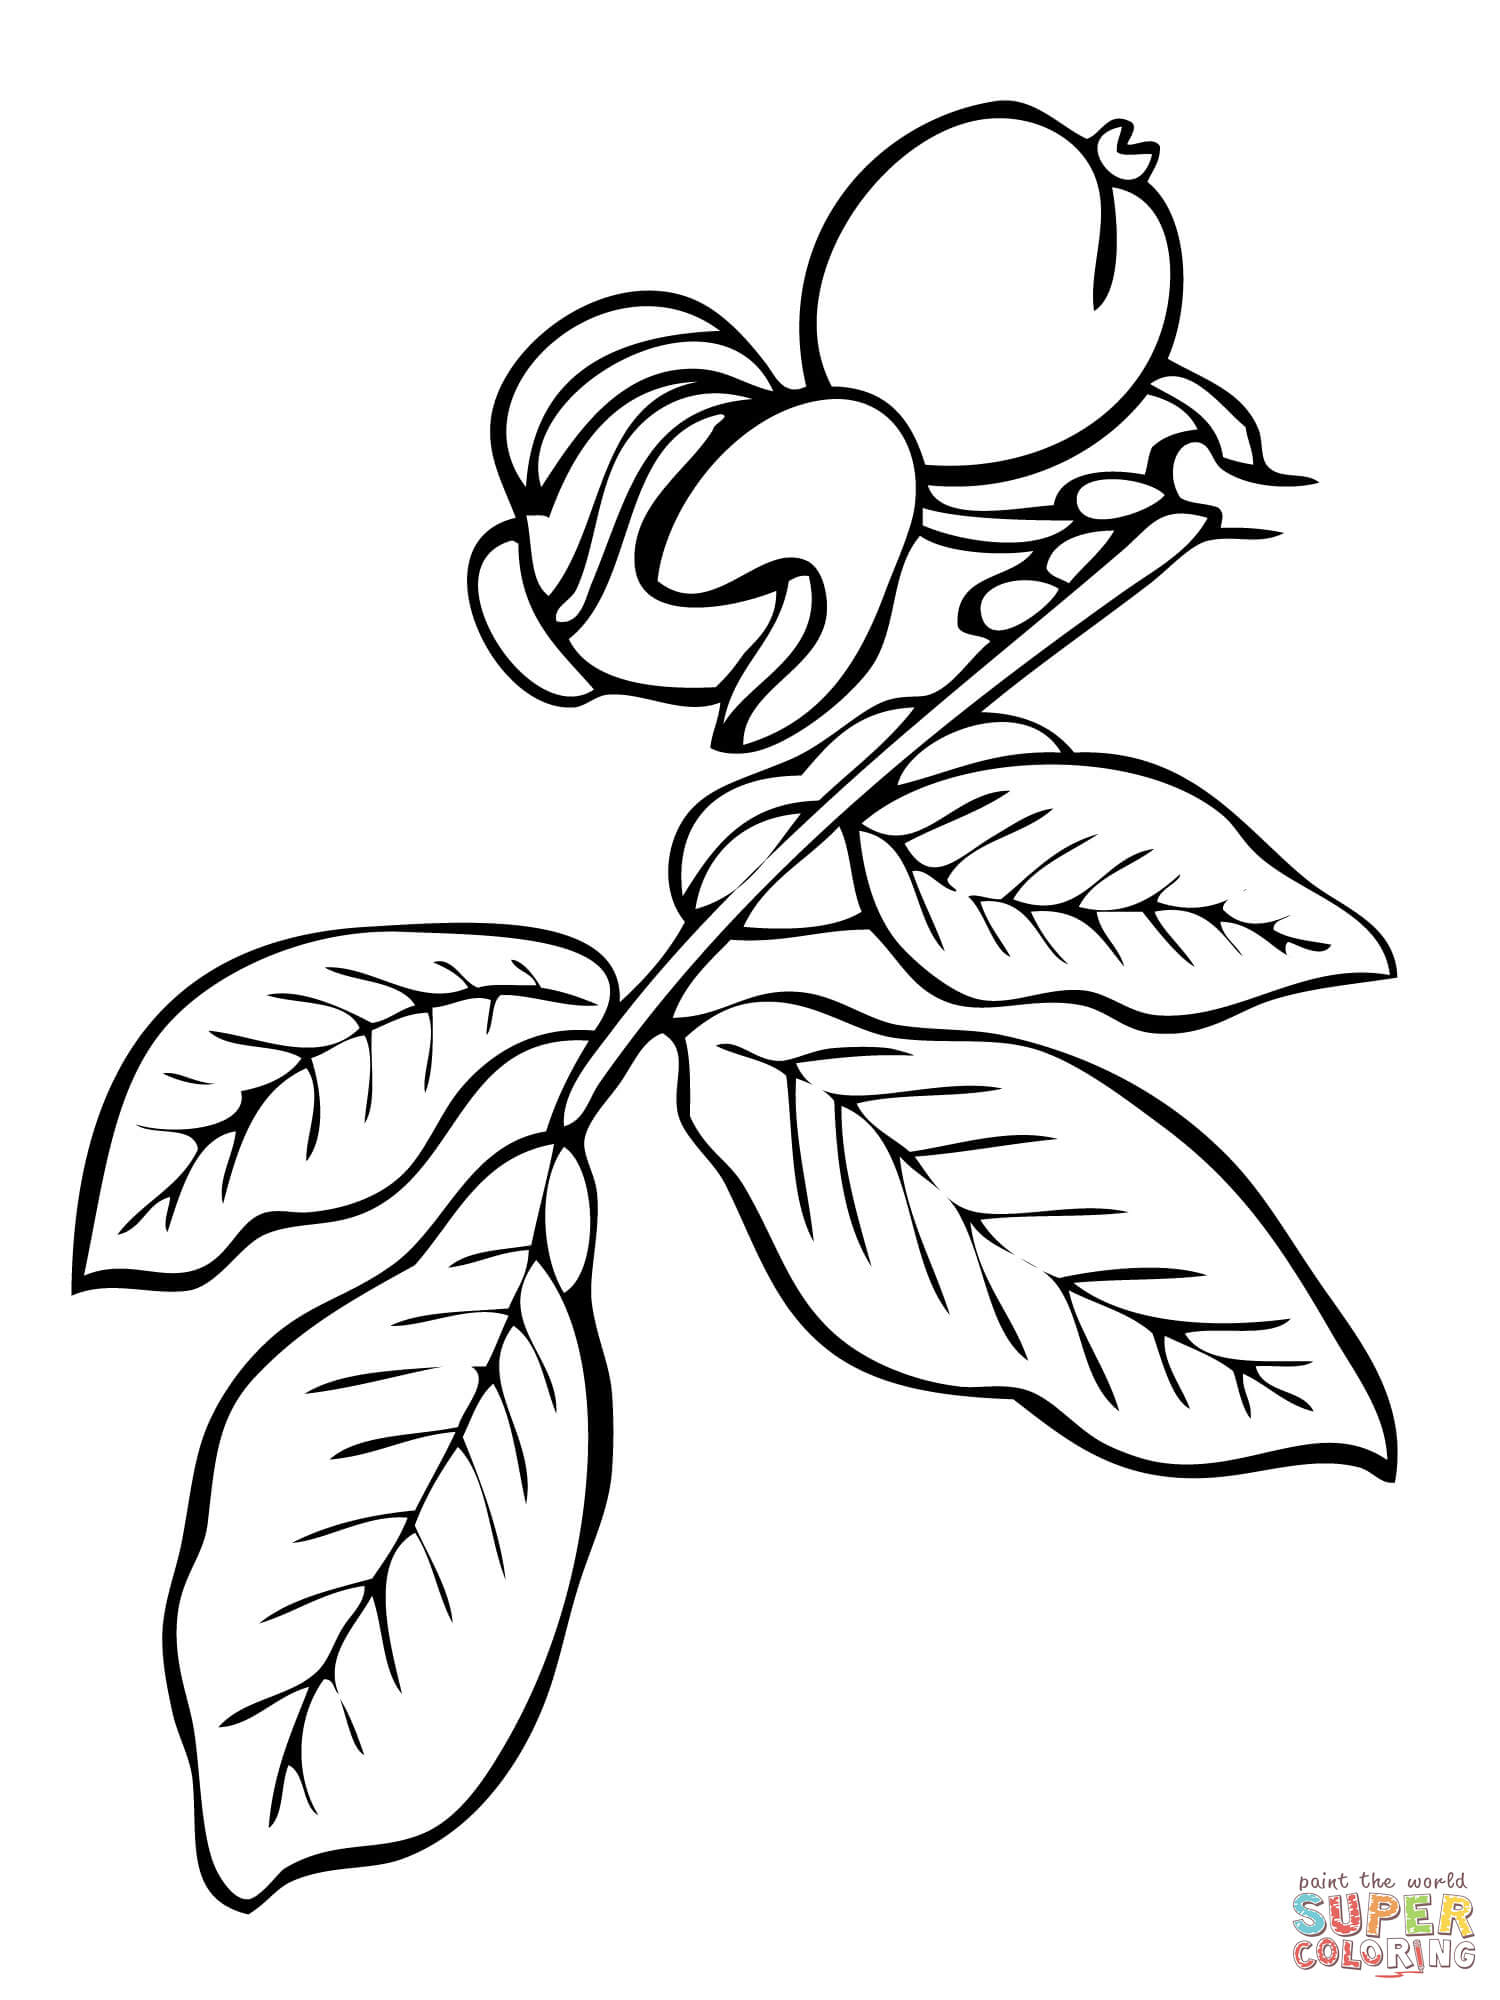 Walnut coloring #10, Download drawings